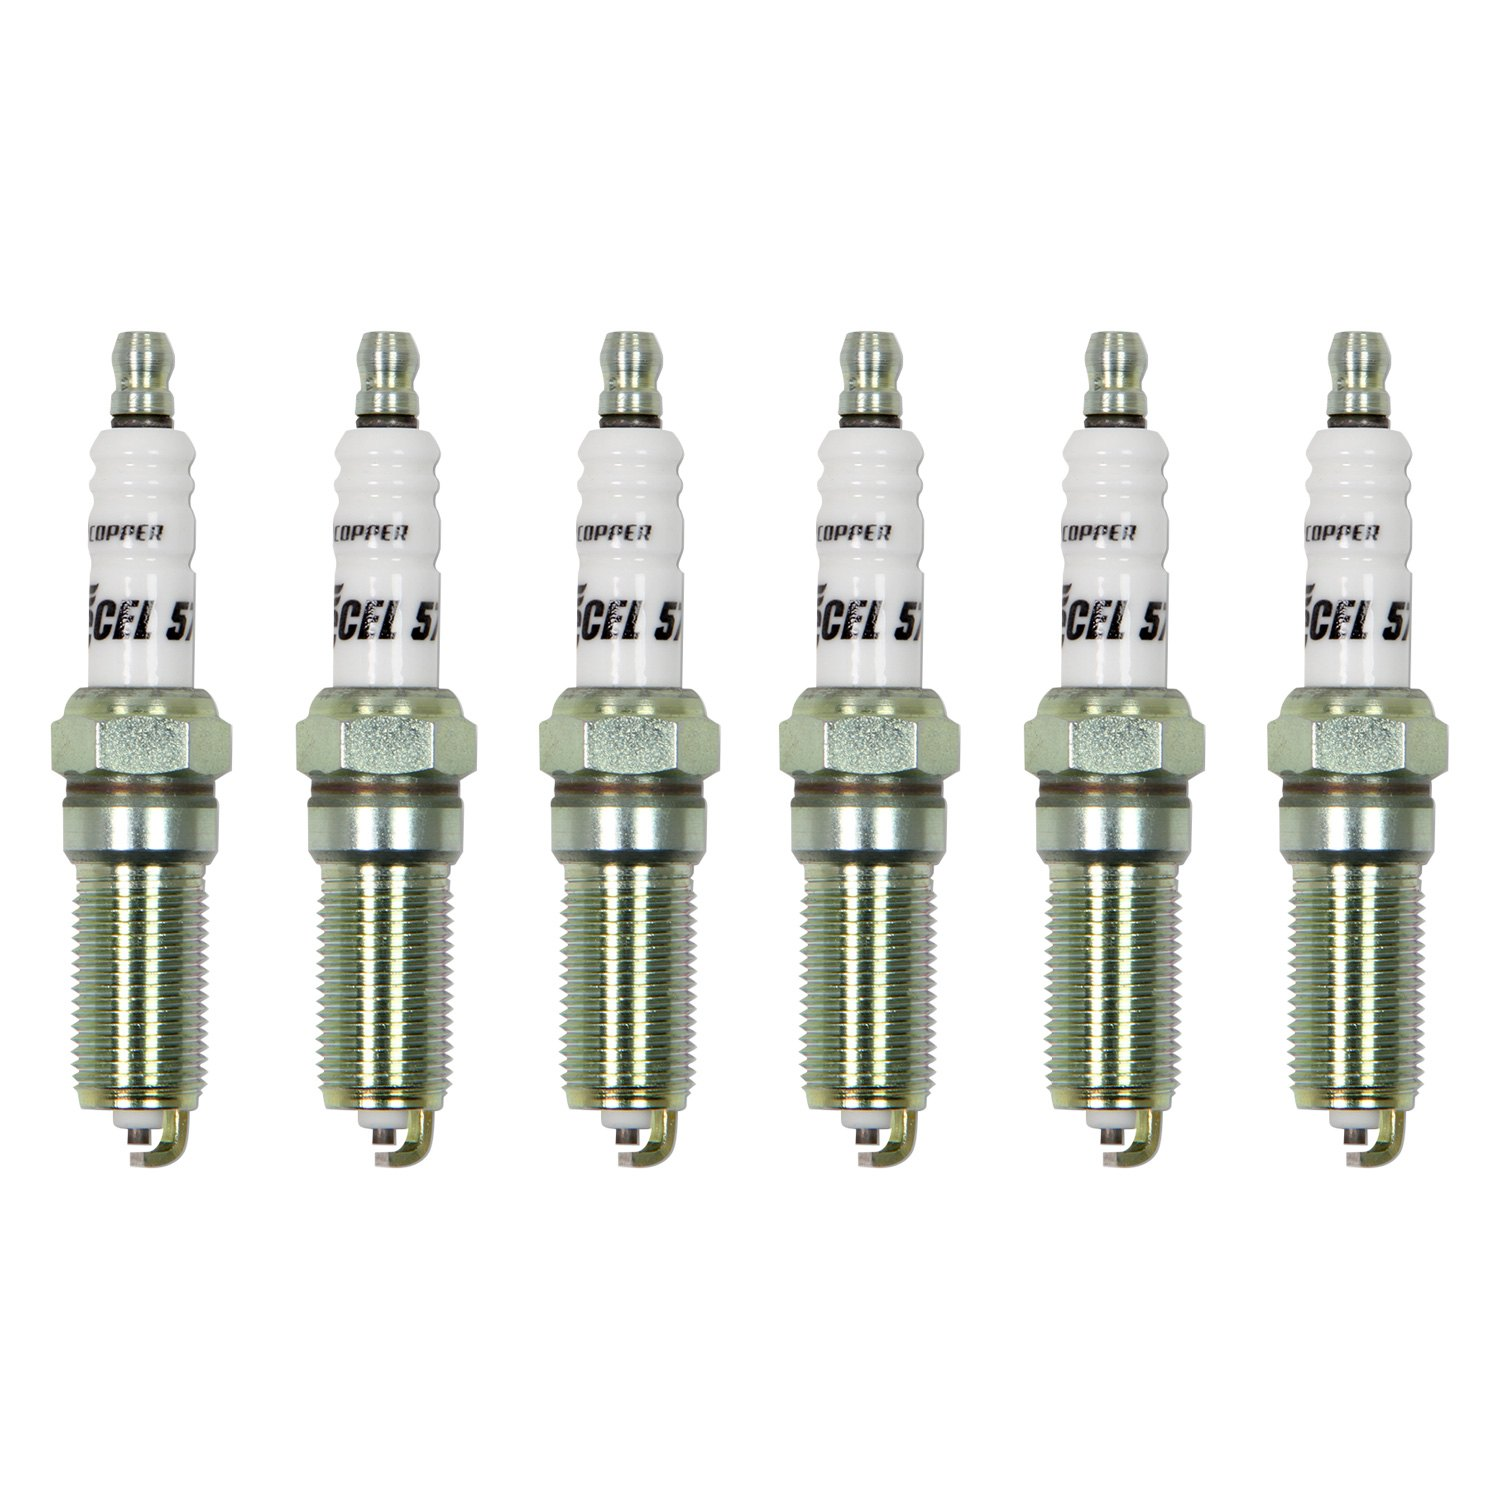 buy cheap Accel® 578-6 - HP Copper Spark Plugs for 2015 RAM 1500 TRUCK Ebay & Amazon